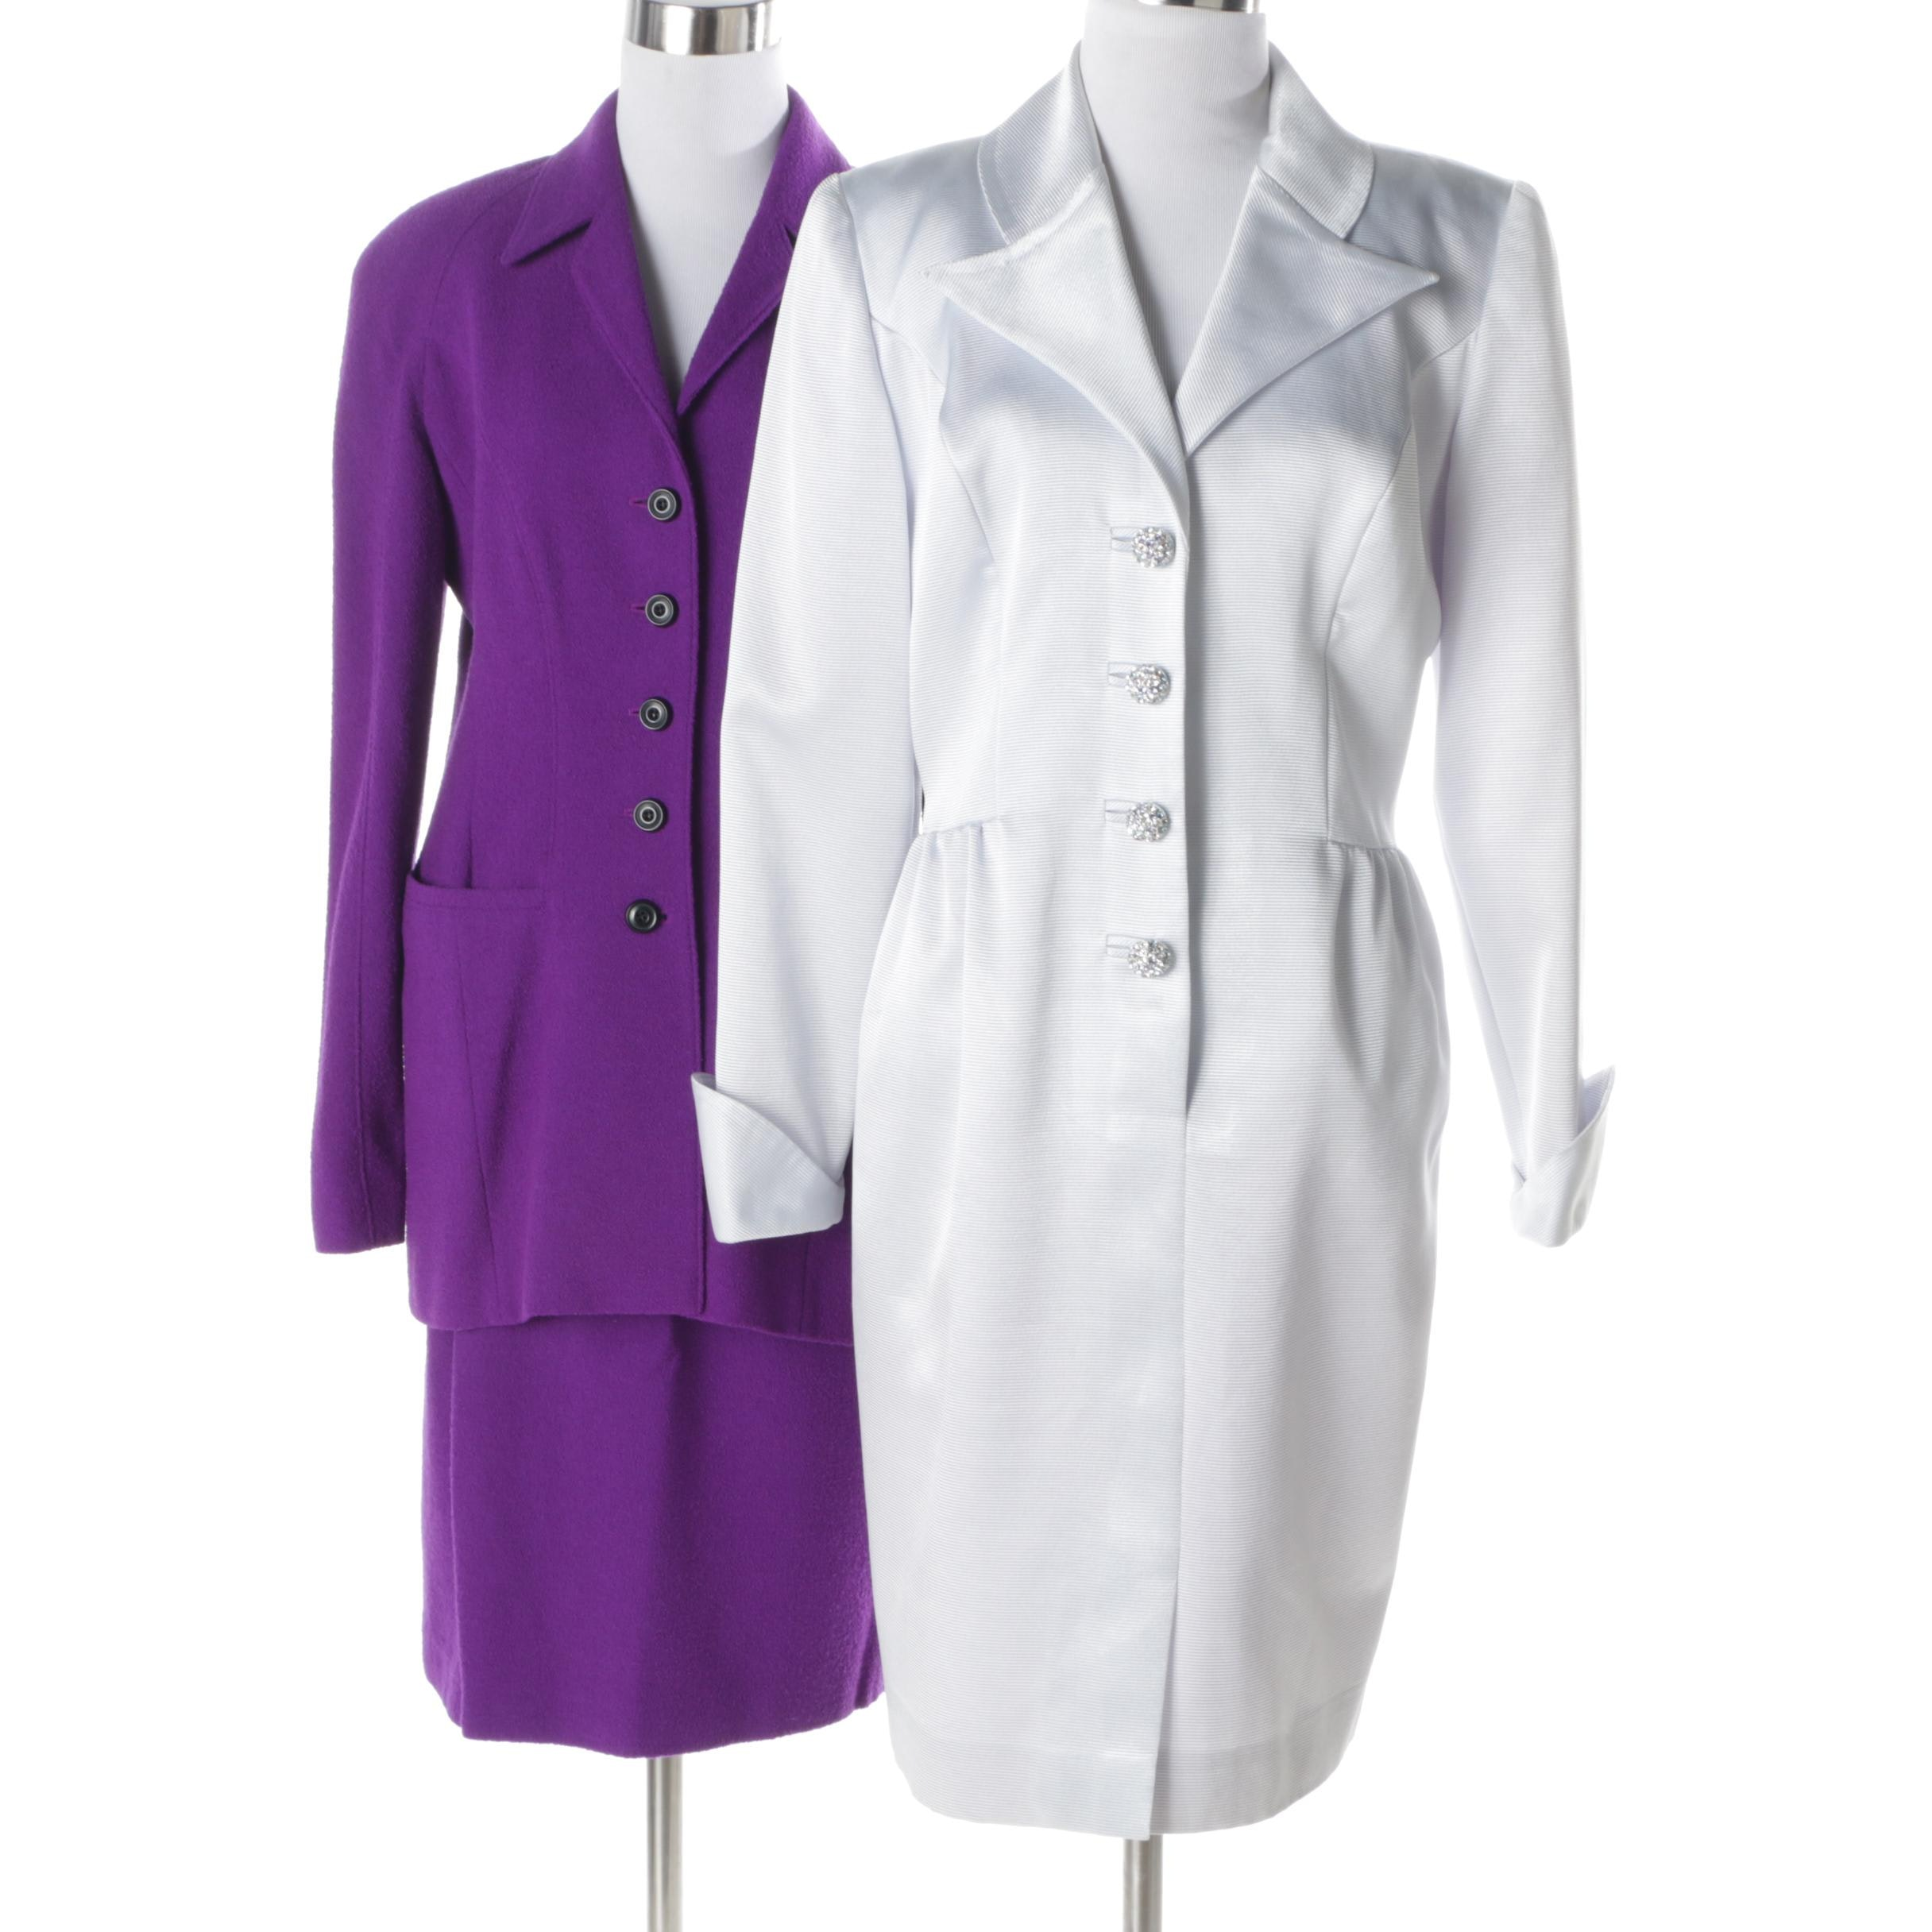 Women's Escada Suit and Nahdré by Victor Costa Dress